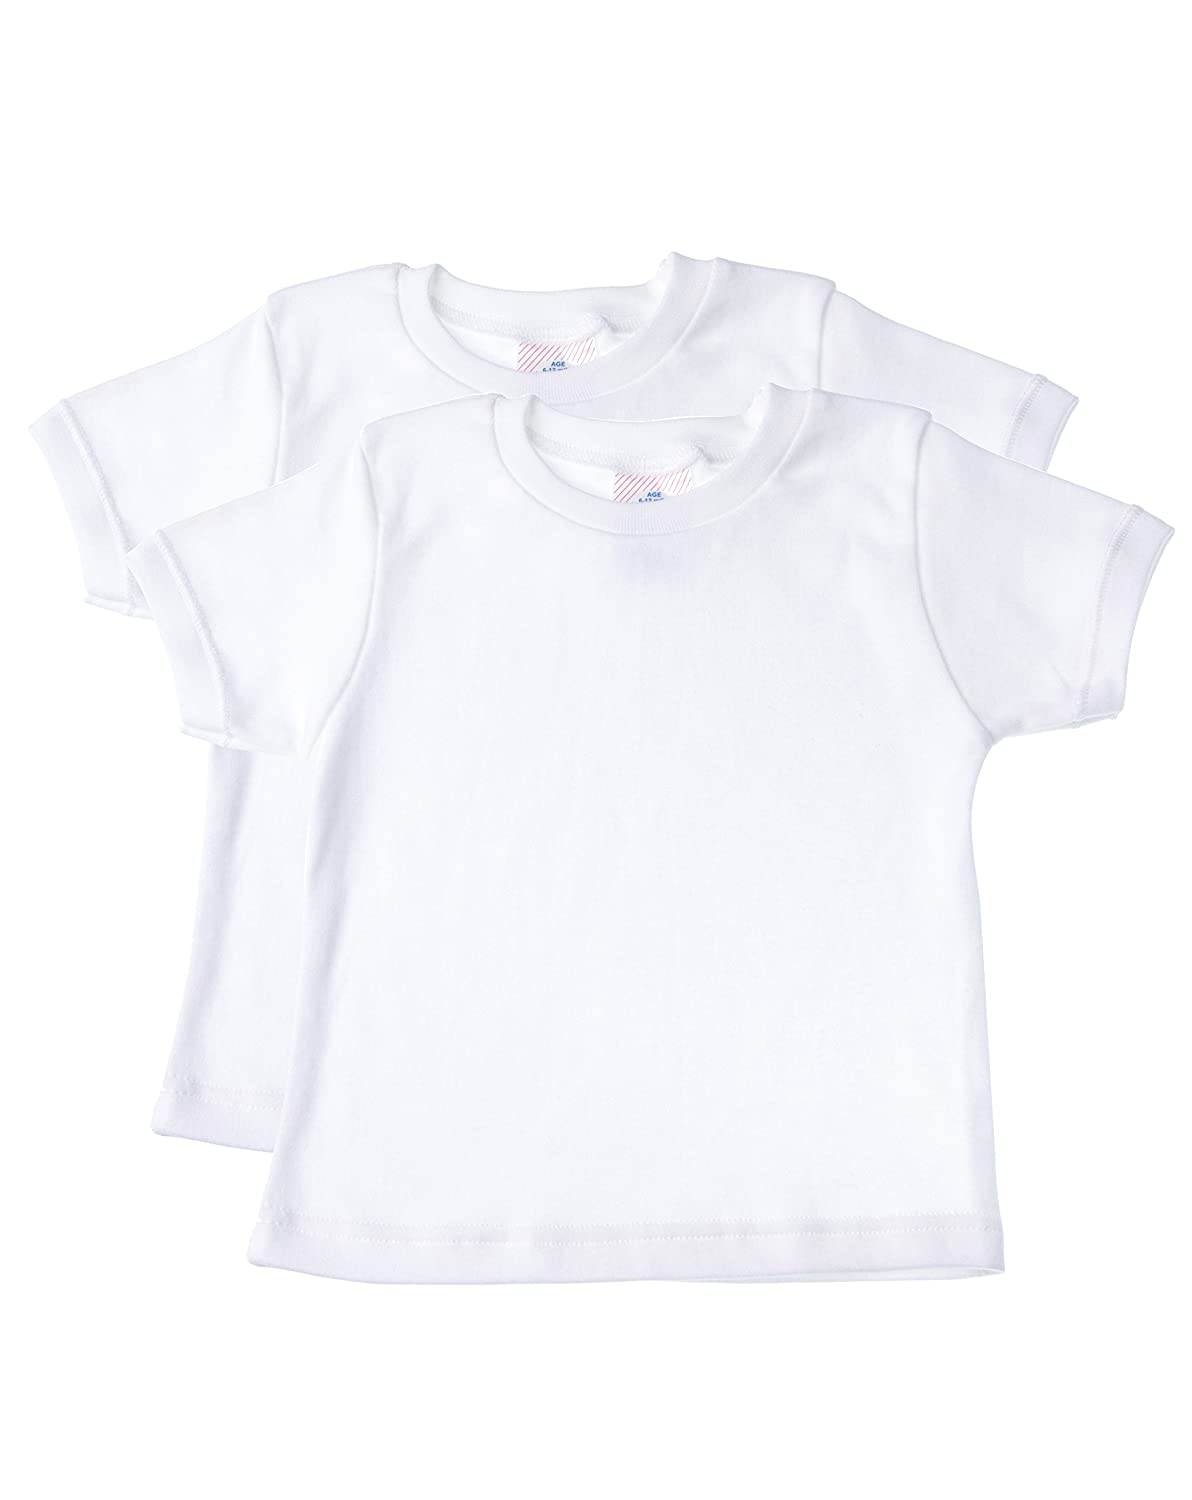 Baby Jay Short Sleeved Undershirt 2 Pack - White Unisex Baby and Toddler Soft Cotton Tee - Boys and Girls T Shirt WTSR 0-3 2-Pack WTSR-0-3-2PK